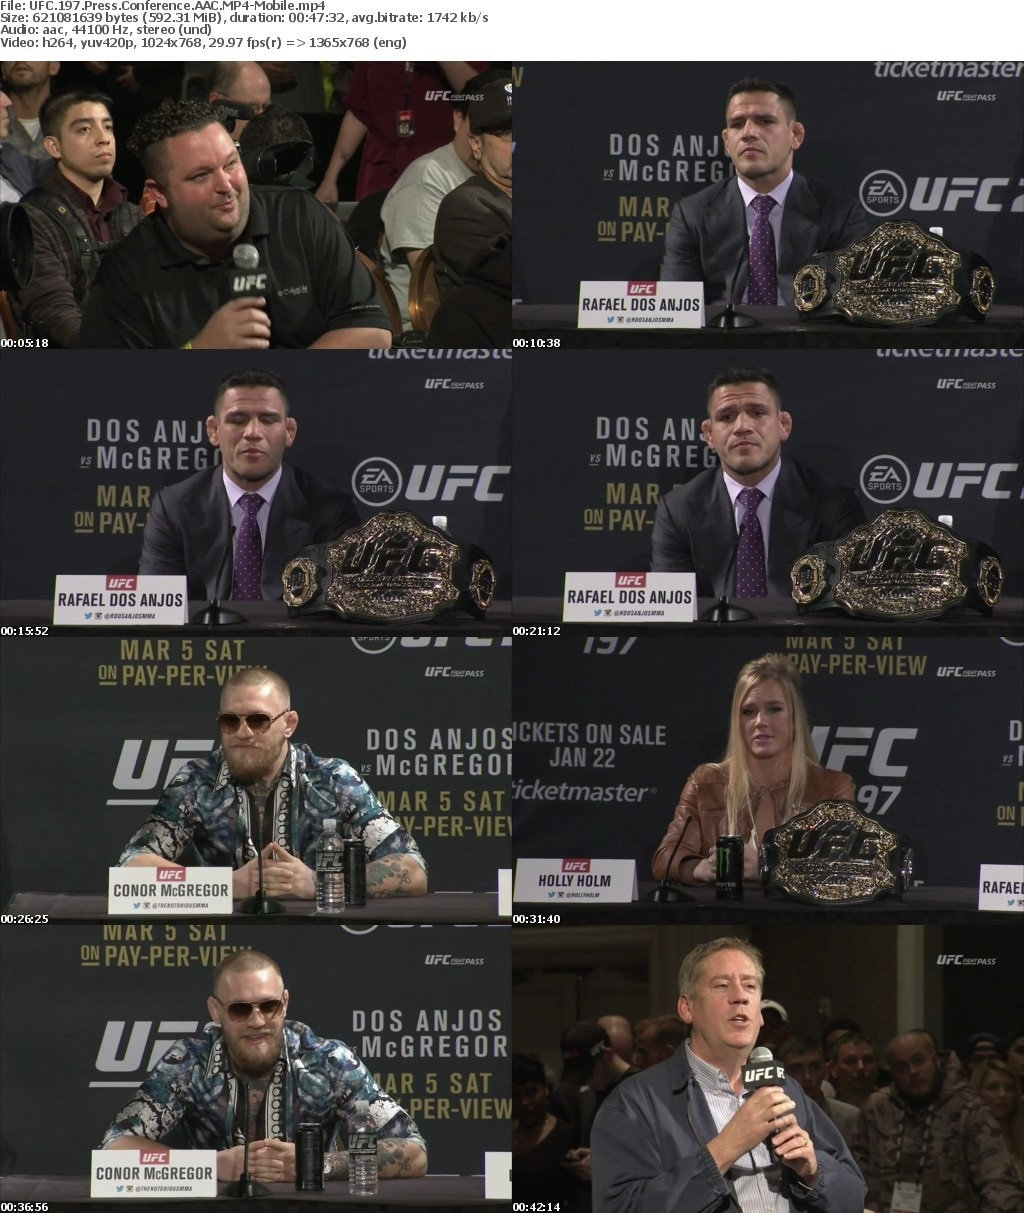 UFC 197 Press Conference AAC MP4-Mobile